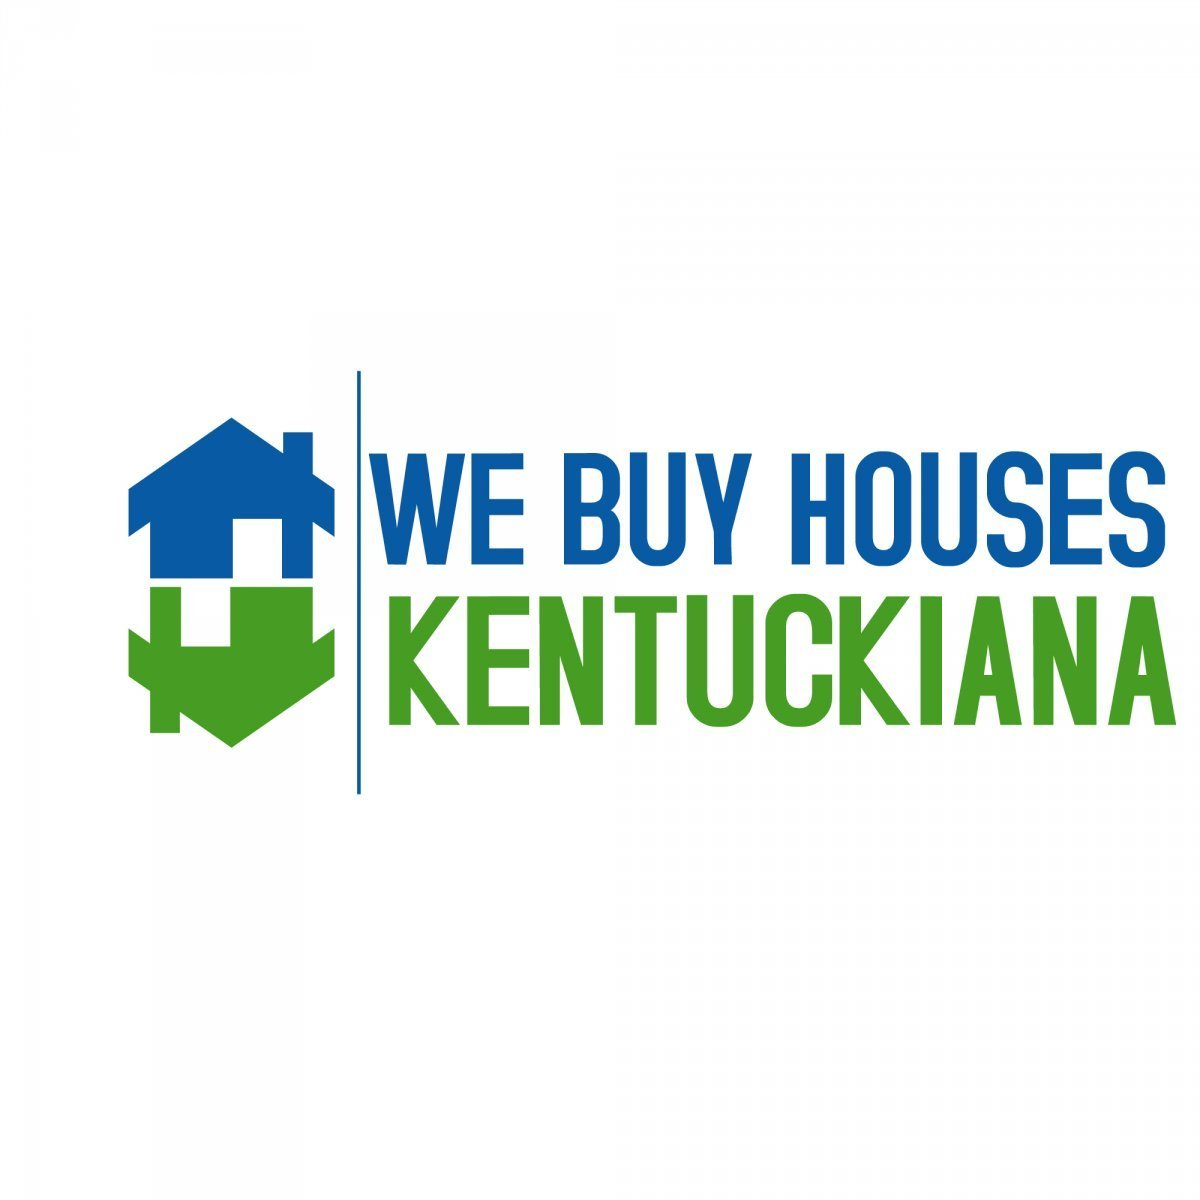 WE BUY HOUSES KENTUCKIANA  logo